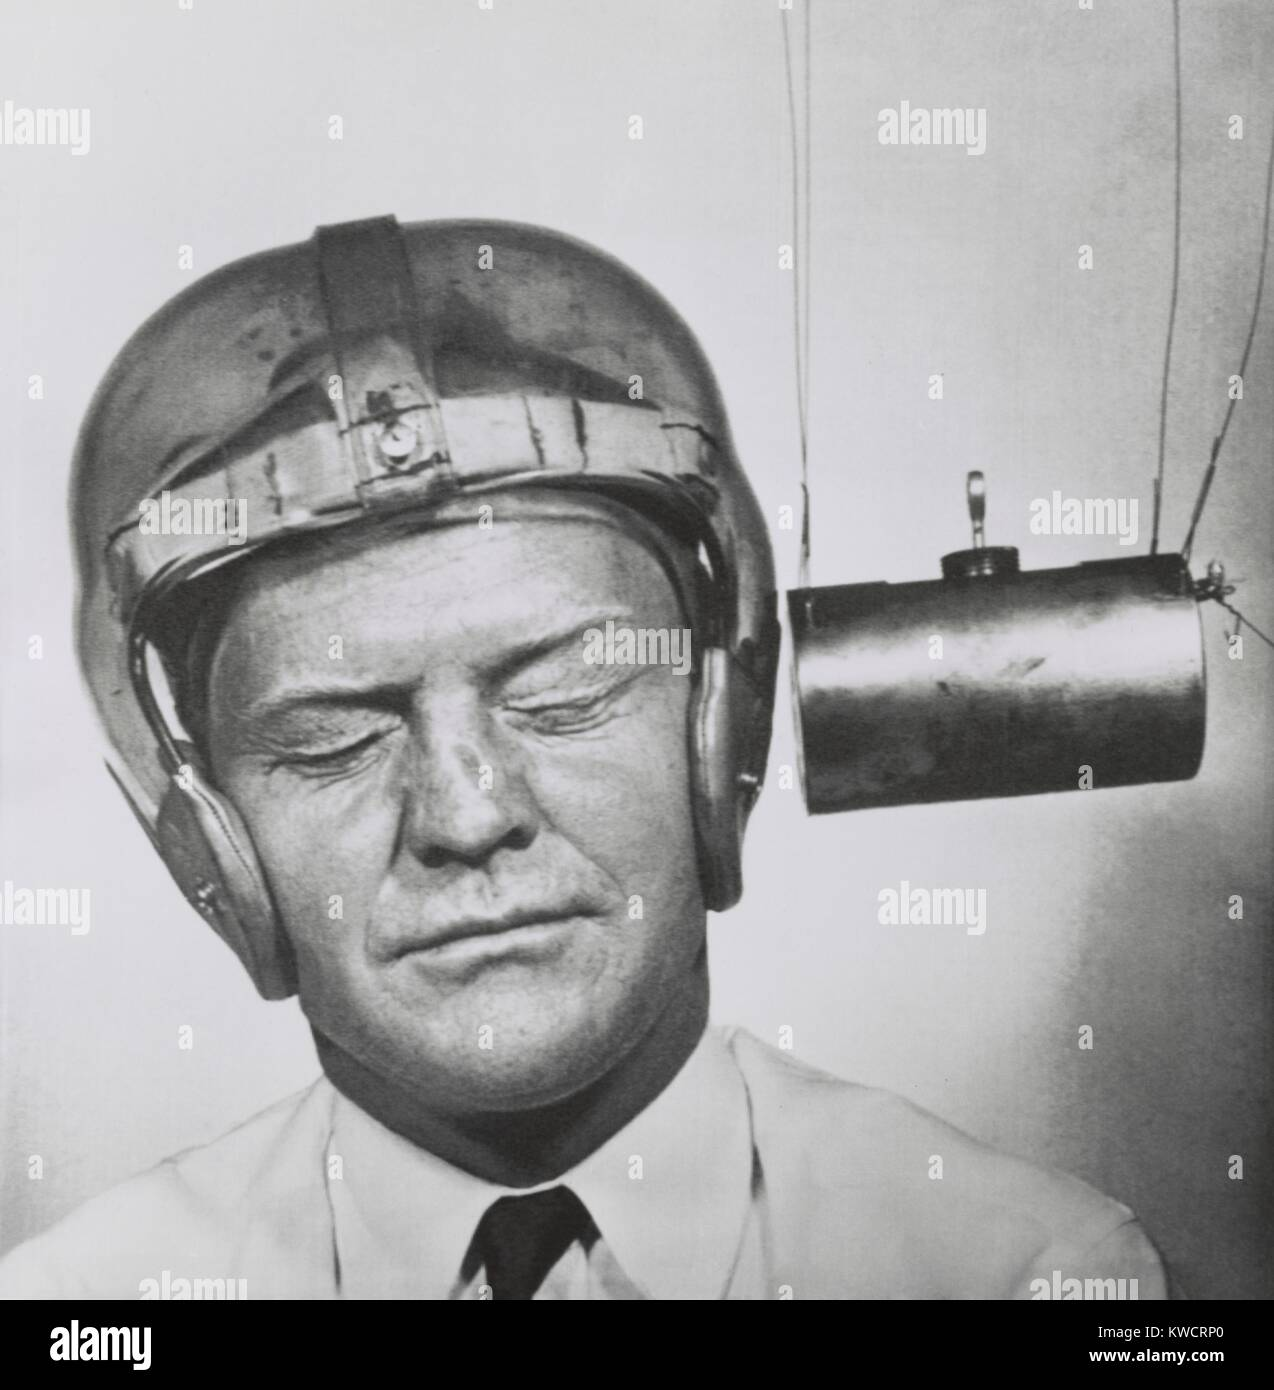 Pendulum pounding a plastic helmet worn for testing to improve headgear for football players. Sept.13, 1950 - (BSLOC_2015_1_219) Stock Photo